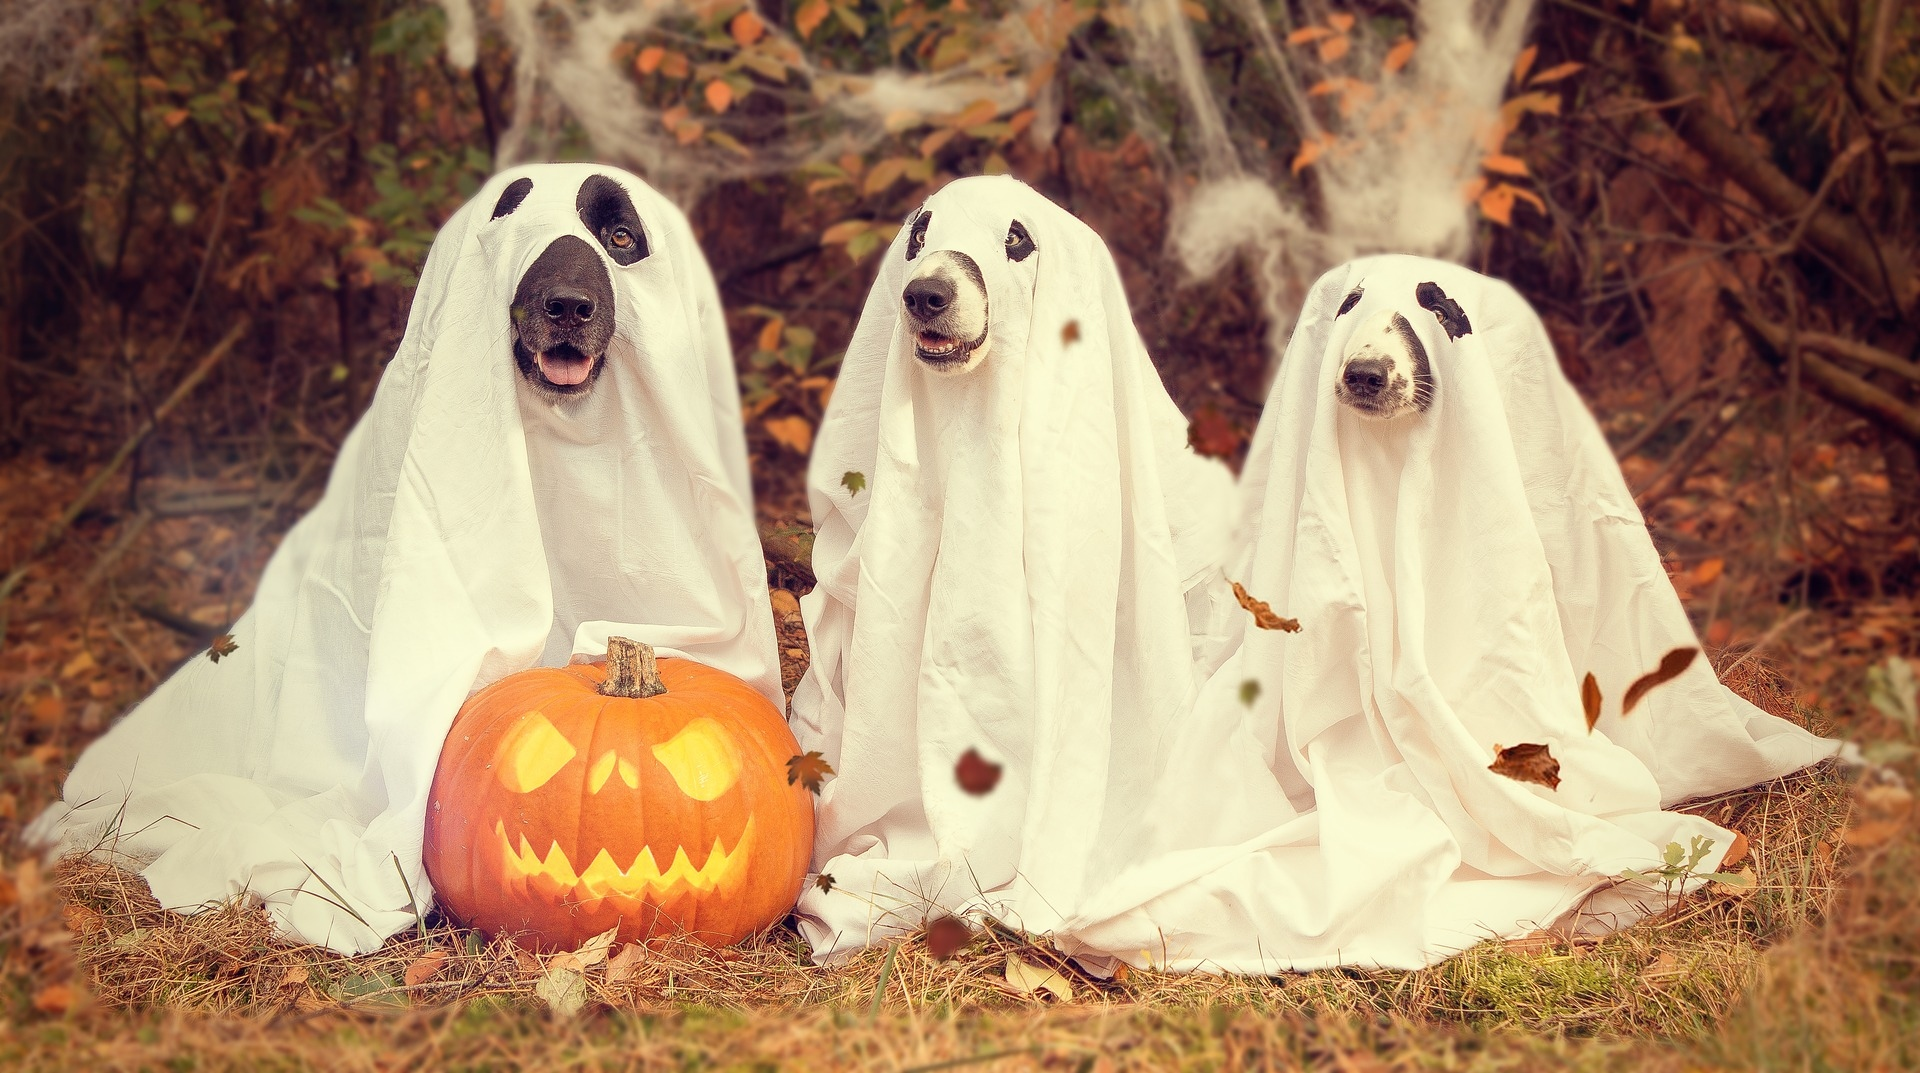 Dogs as Ghosts